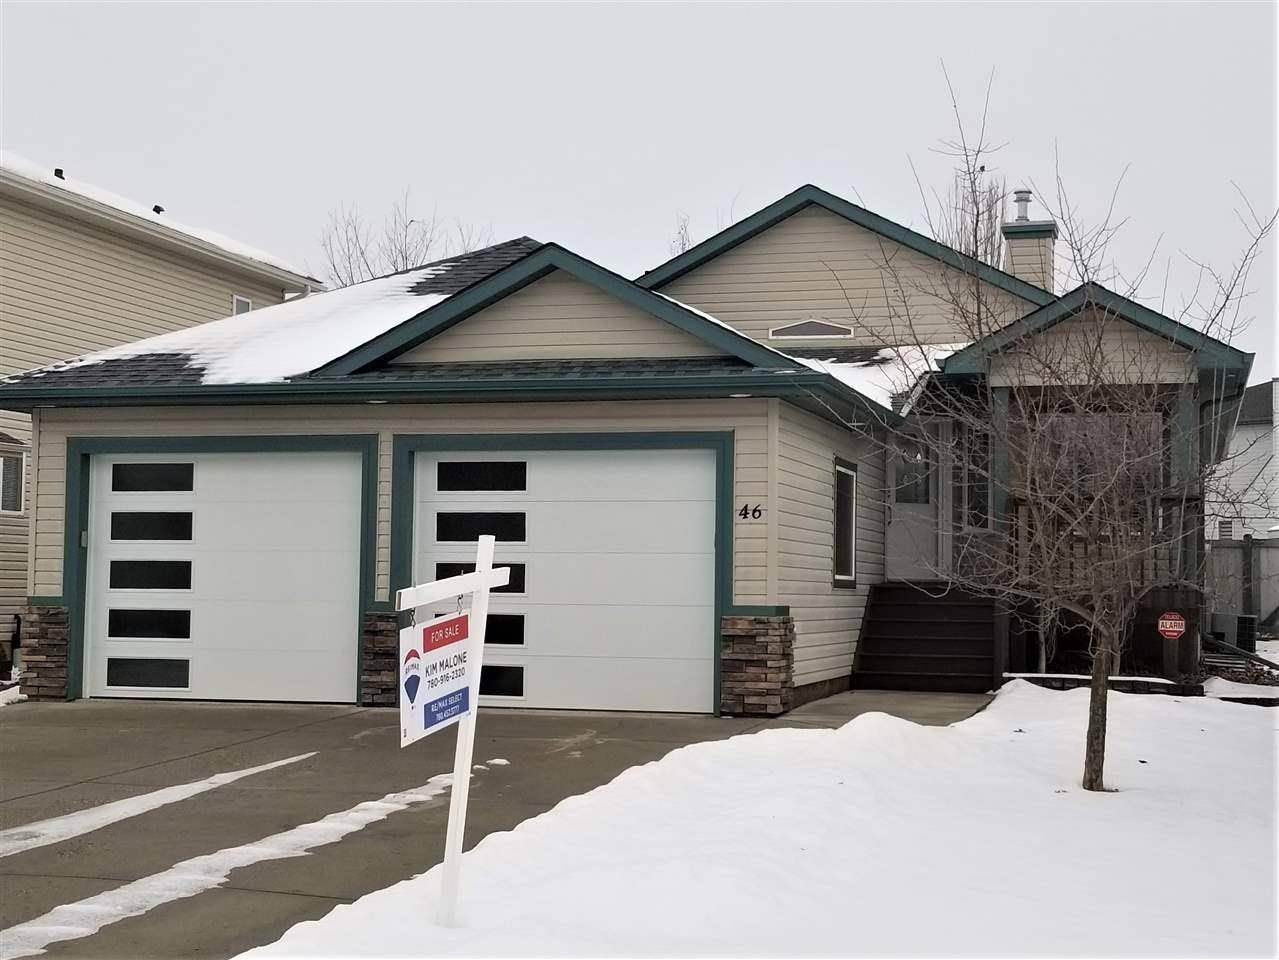 House for sale at 46 Deer Park Cres Spruce Grove Alberta - MLS: E4139090